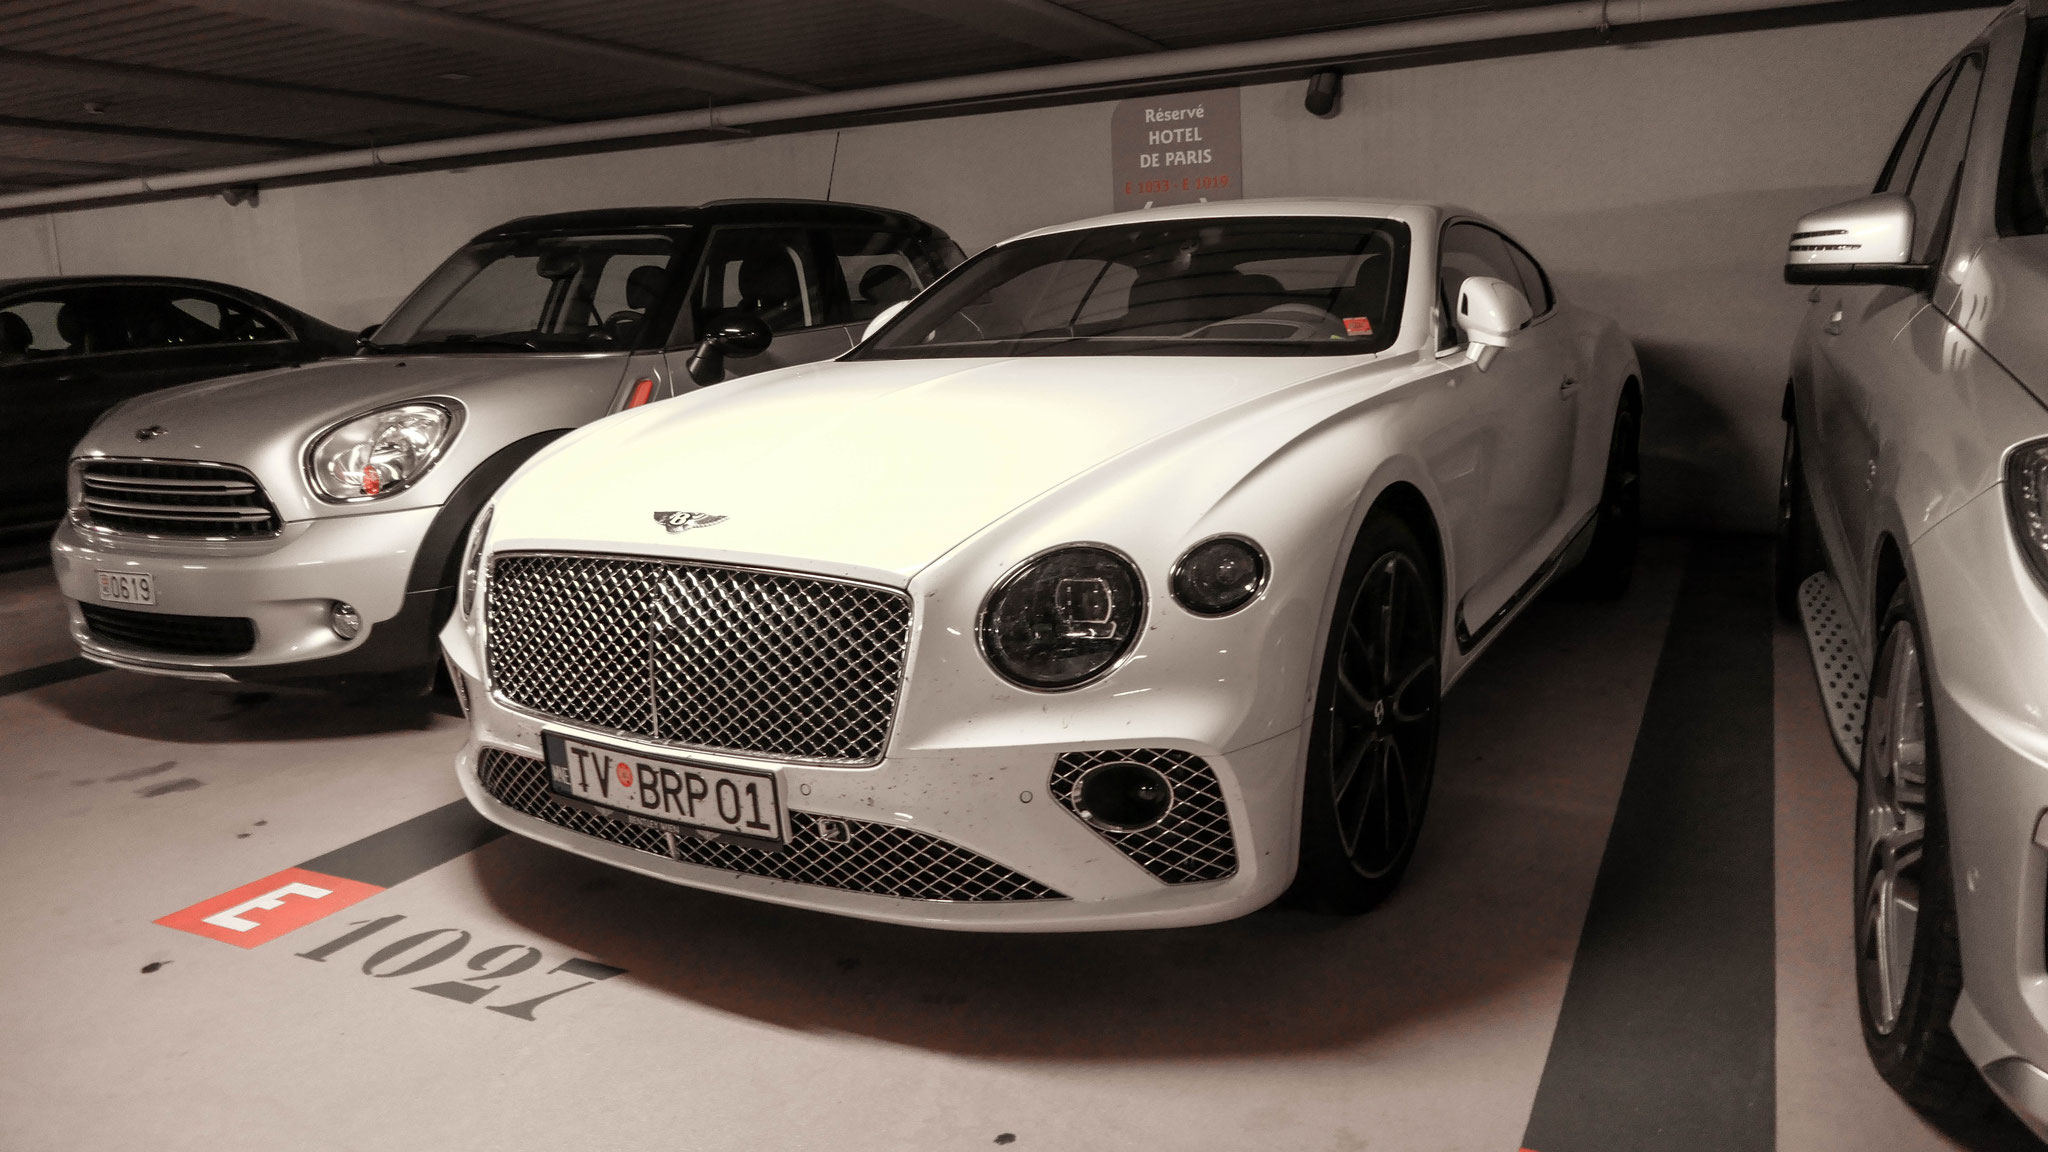 Bentley Continental GT - TV-BRP-01 (MNE)